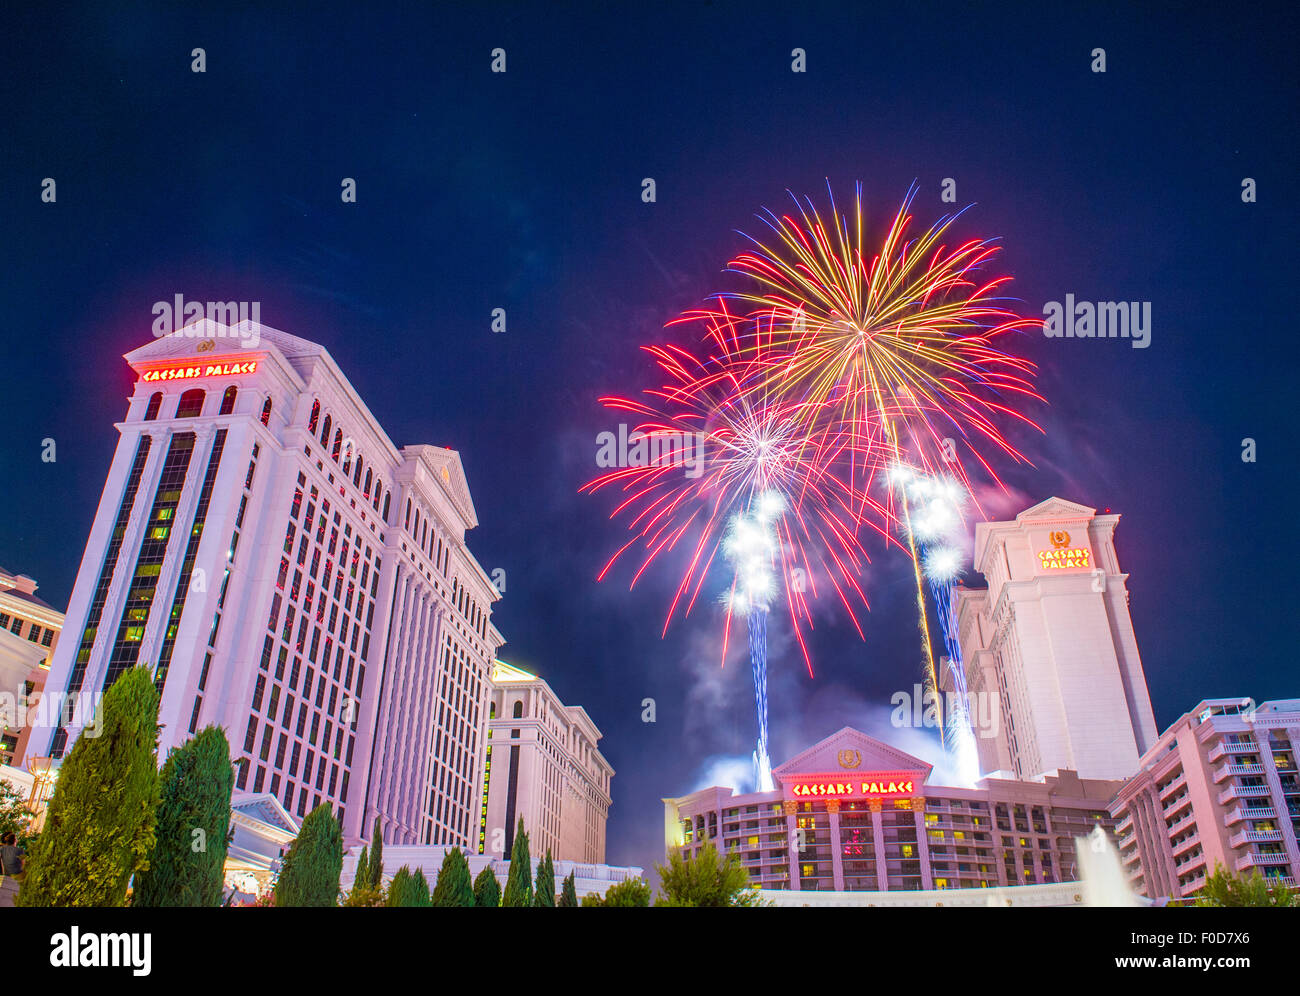 LAS VEGAS - JULY 04 : The Caesars Palace fireworks show as part of the 4th of July celebration in Las Vegas on July Stock Photo